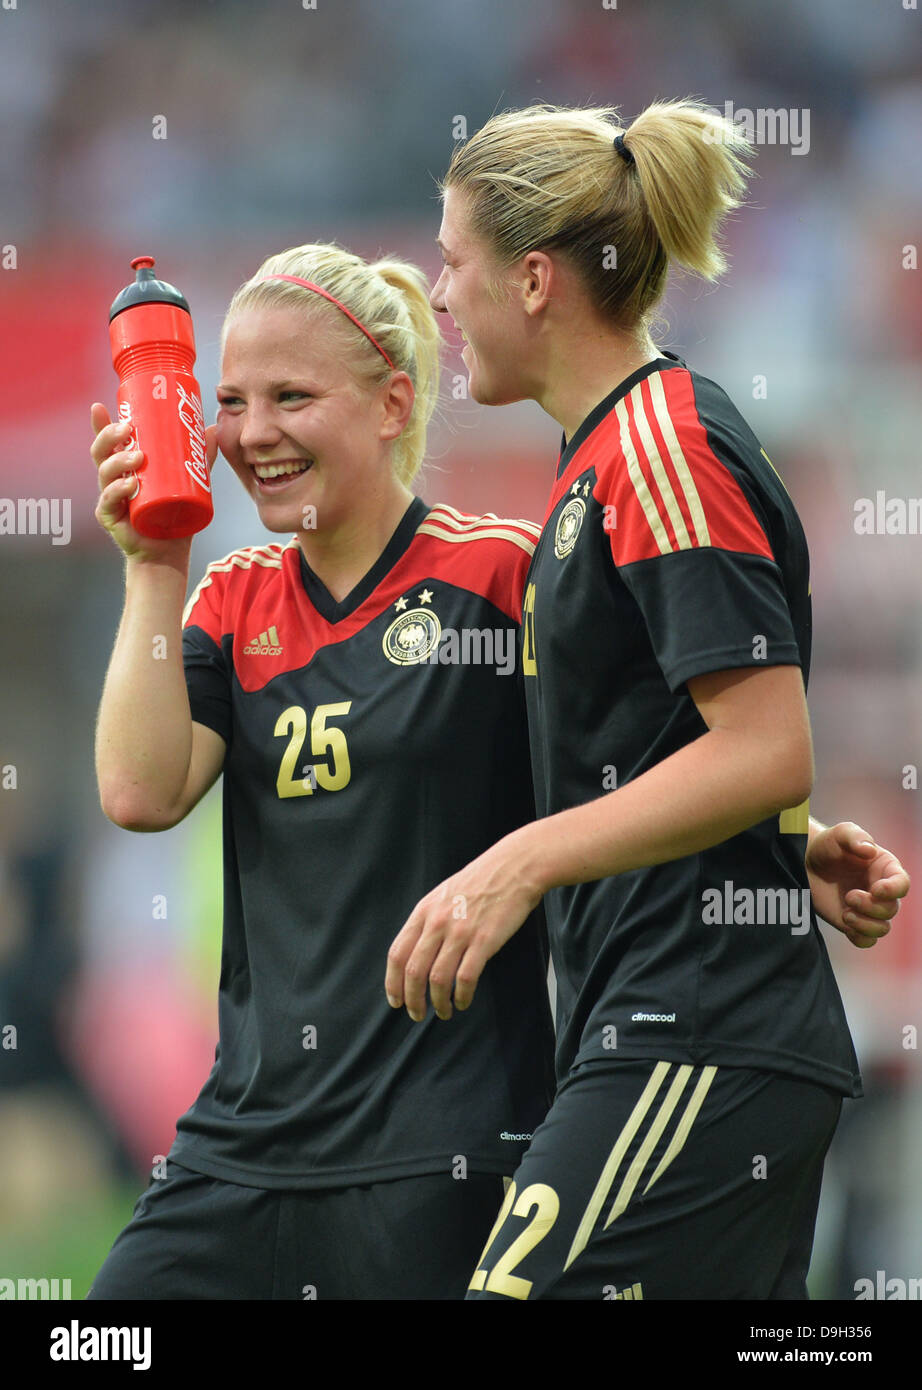 Germany's Leonie Maier (L) cheers with her teammate Luisa Wensing after the international women's soccer - Stock Image